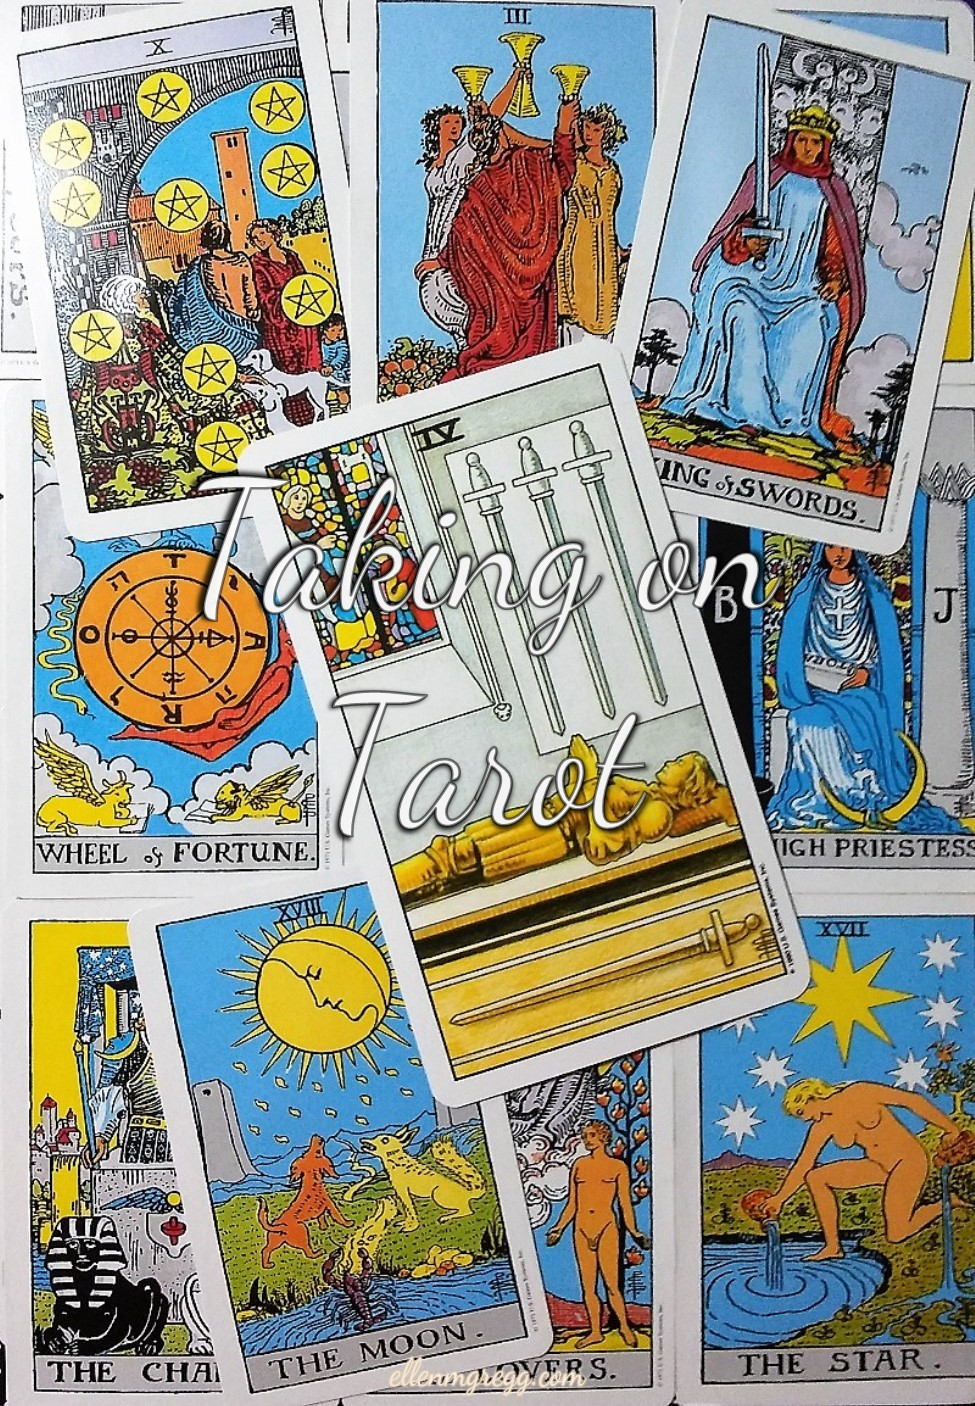 Taking On Tarot: Four of Swords ~ Self-Study of the Universal Waite Tarot deck, created by Stuart P. Kaplan, drawings by Pamela Colman Smith, recolored by Mary Hanson-Roberts, published by U.S. Games Systems, Inc.